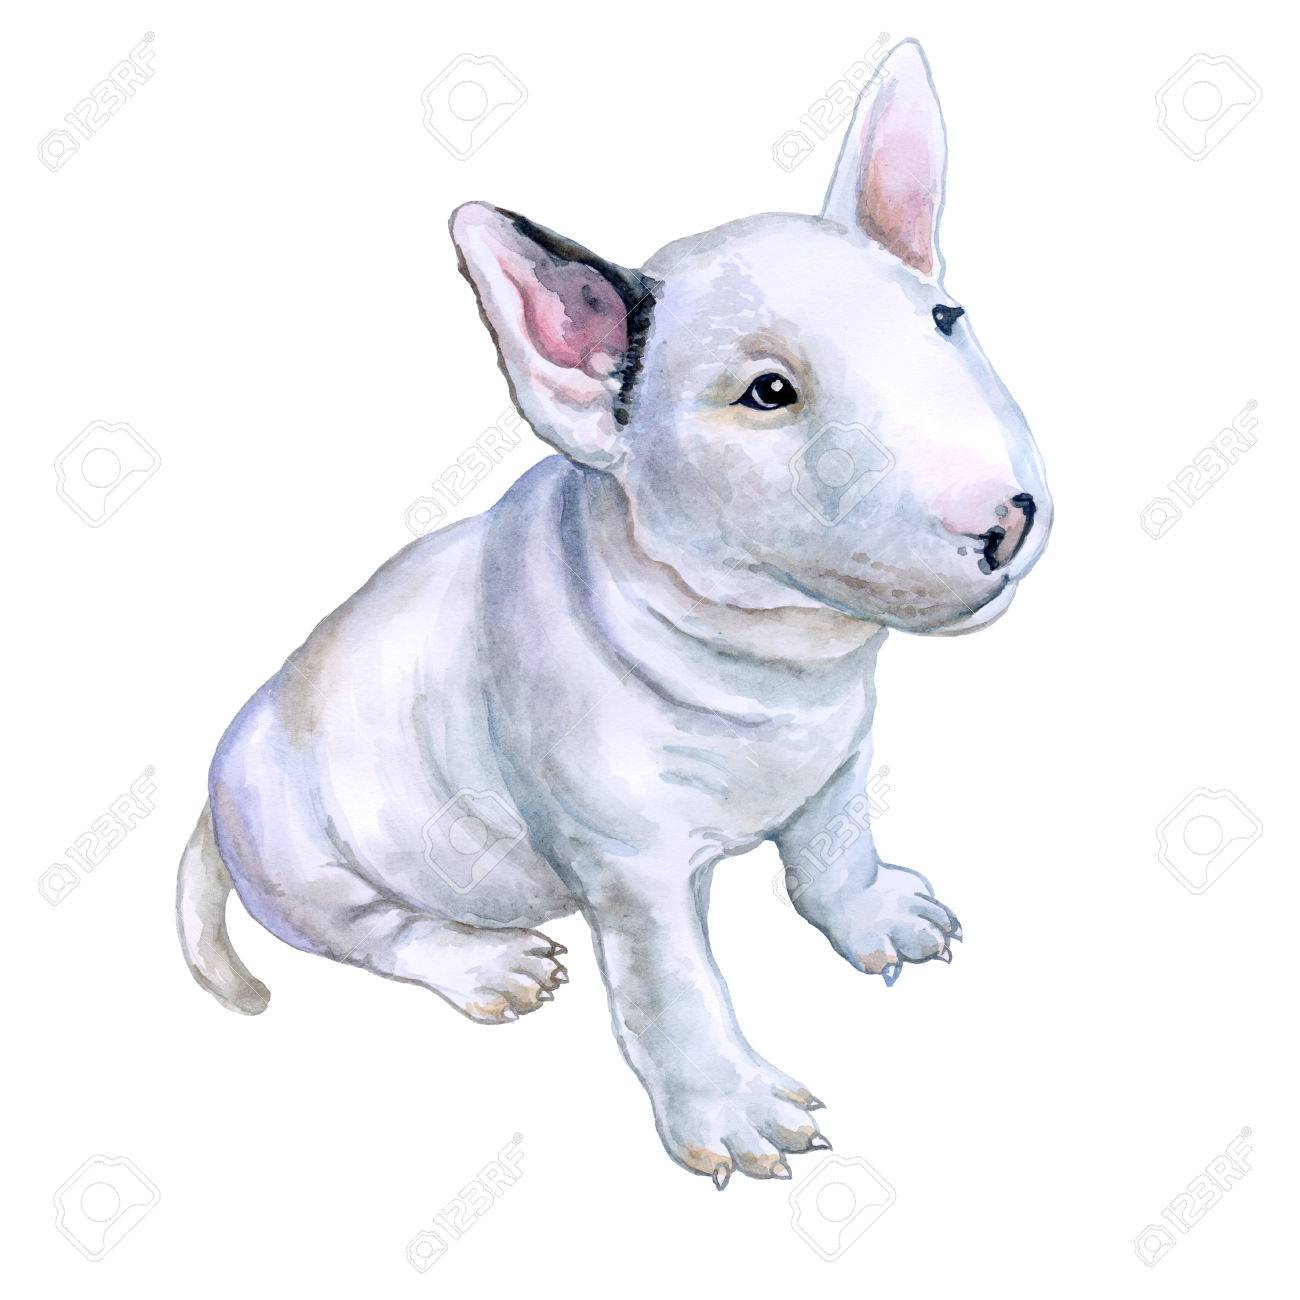 Watercolor portrait of white English Bull terrier, the white